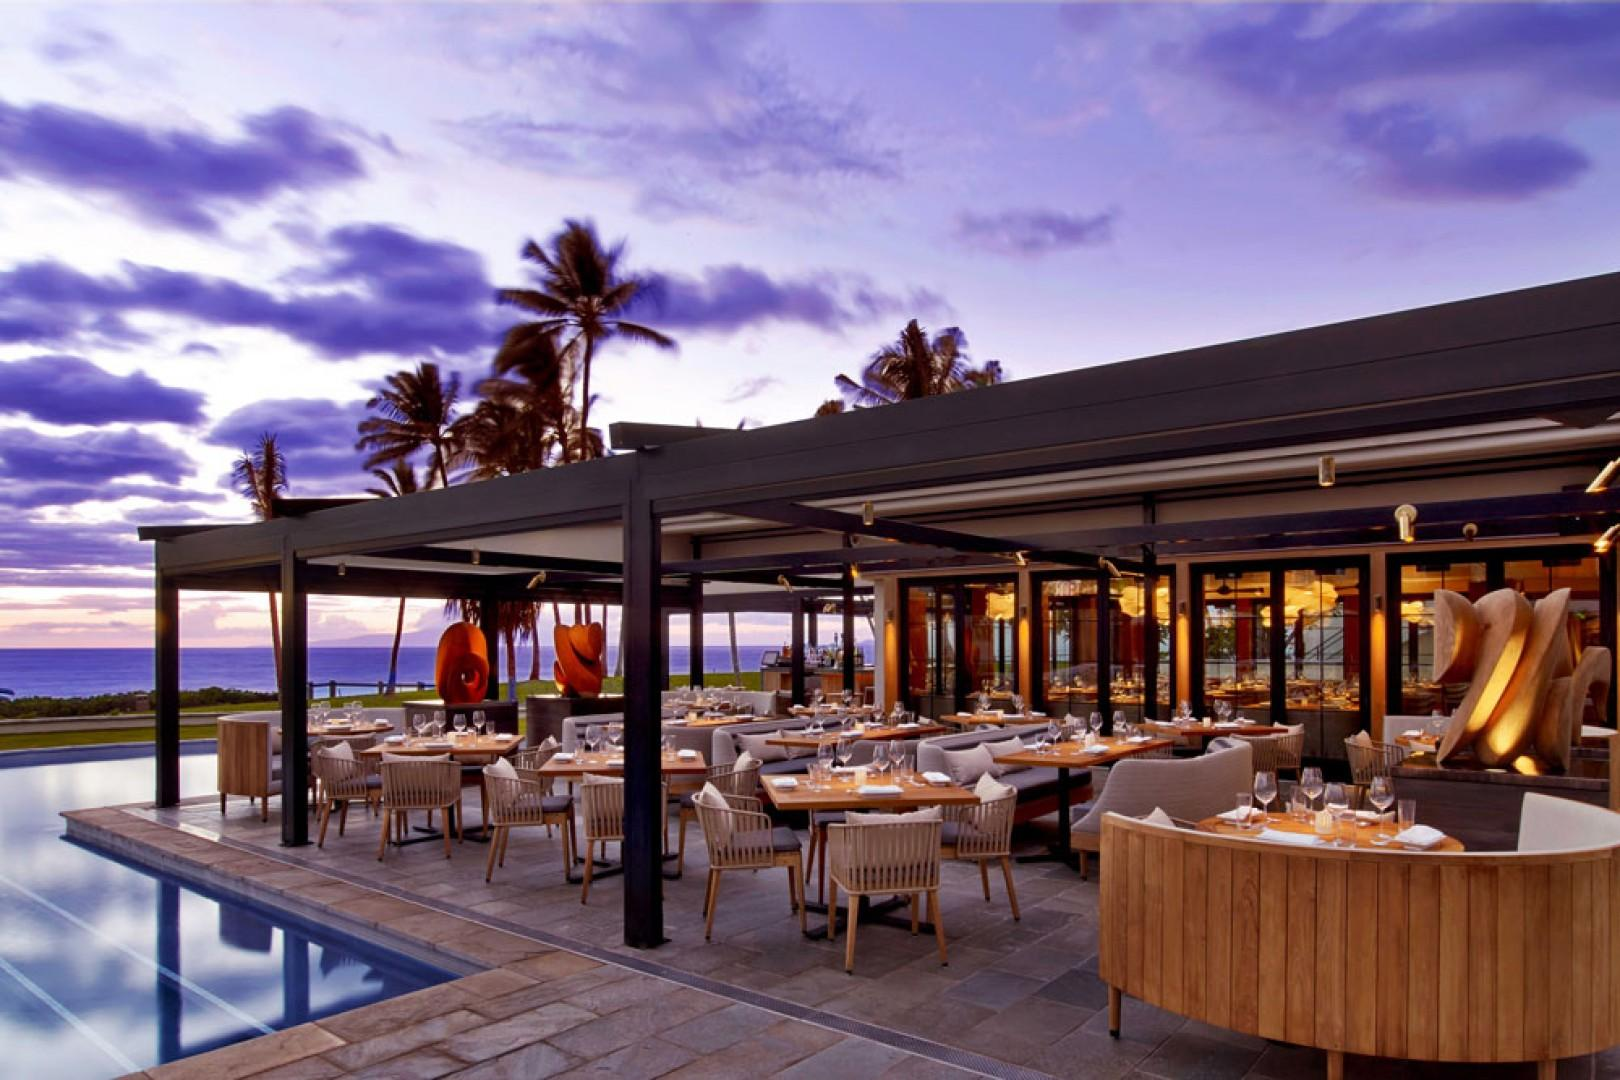 Feast On Asian Cuisine at Famous Morimoto's Maui